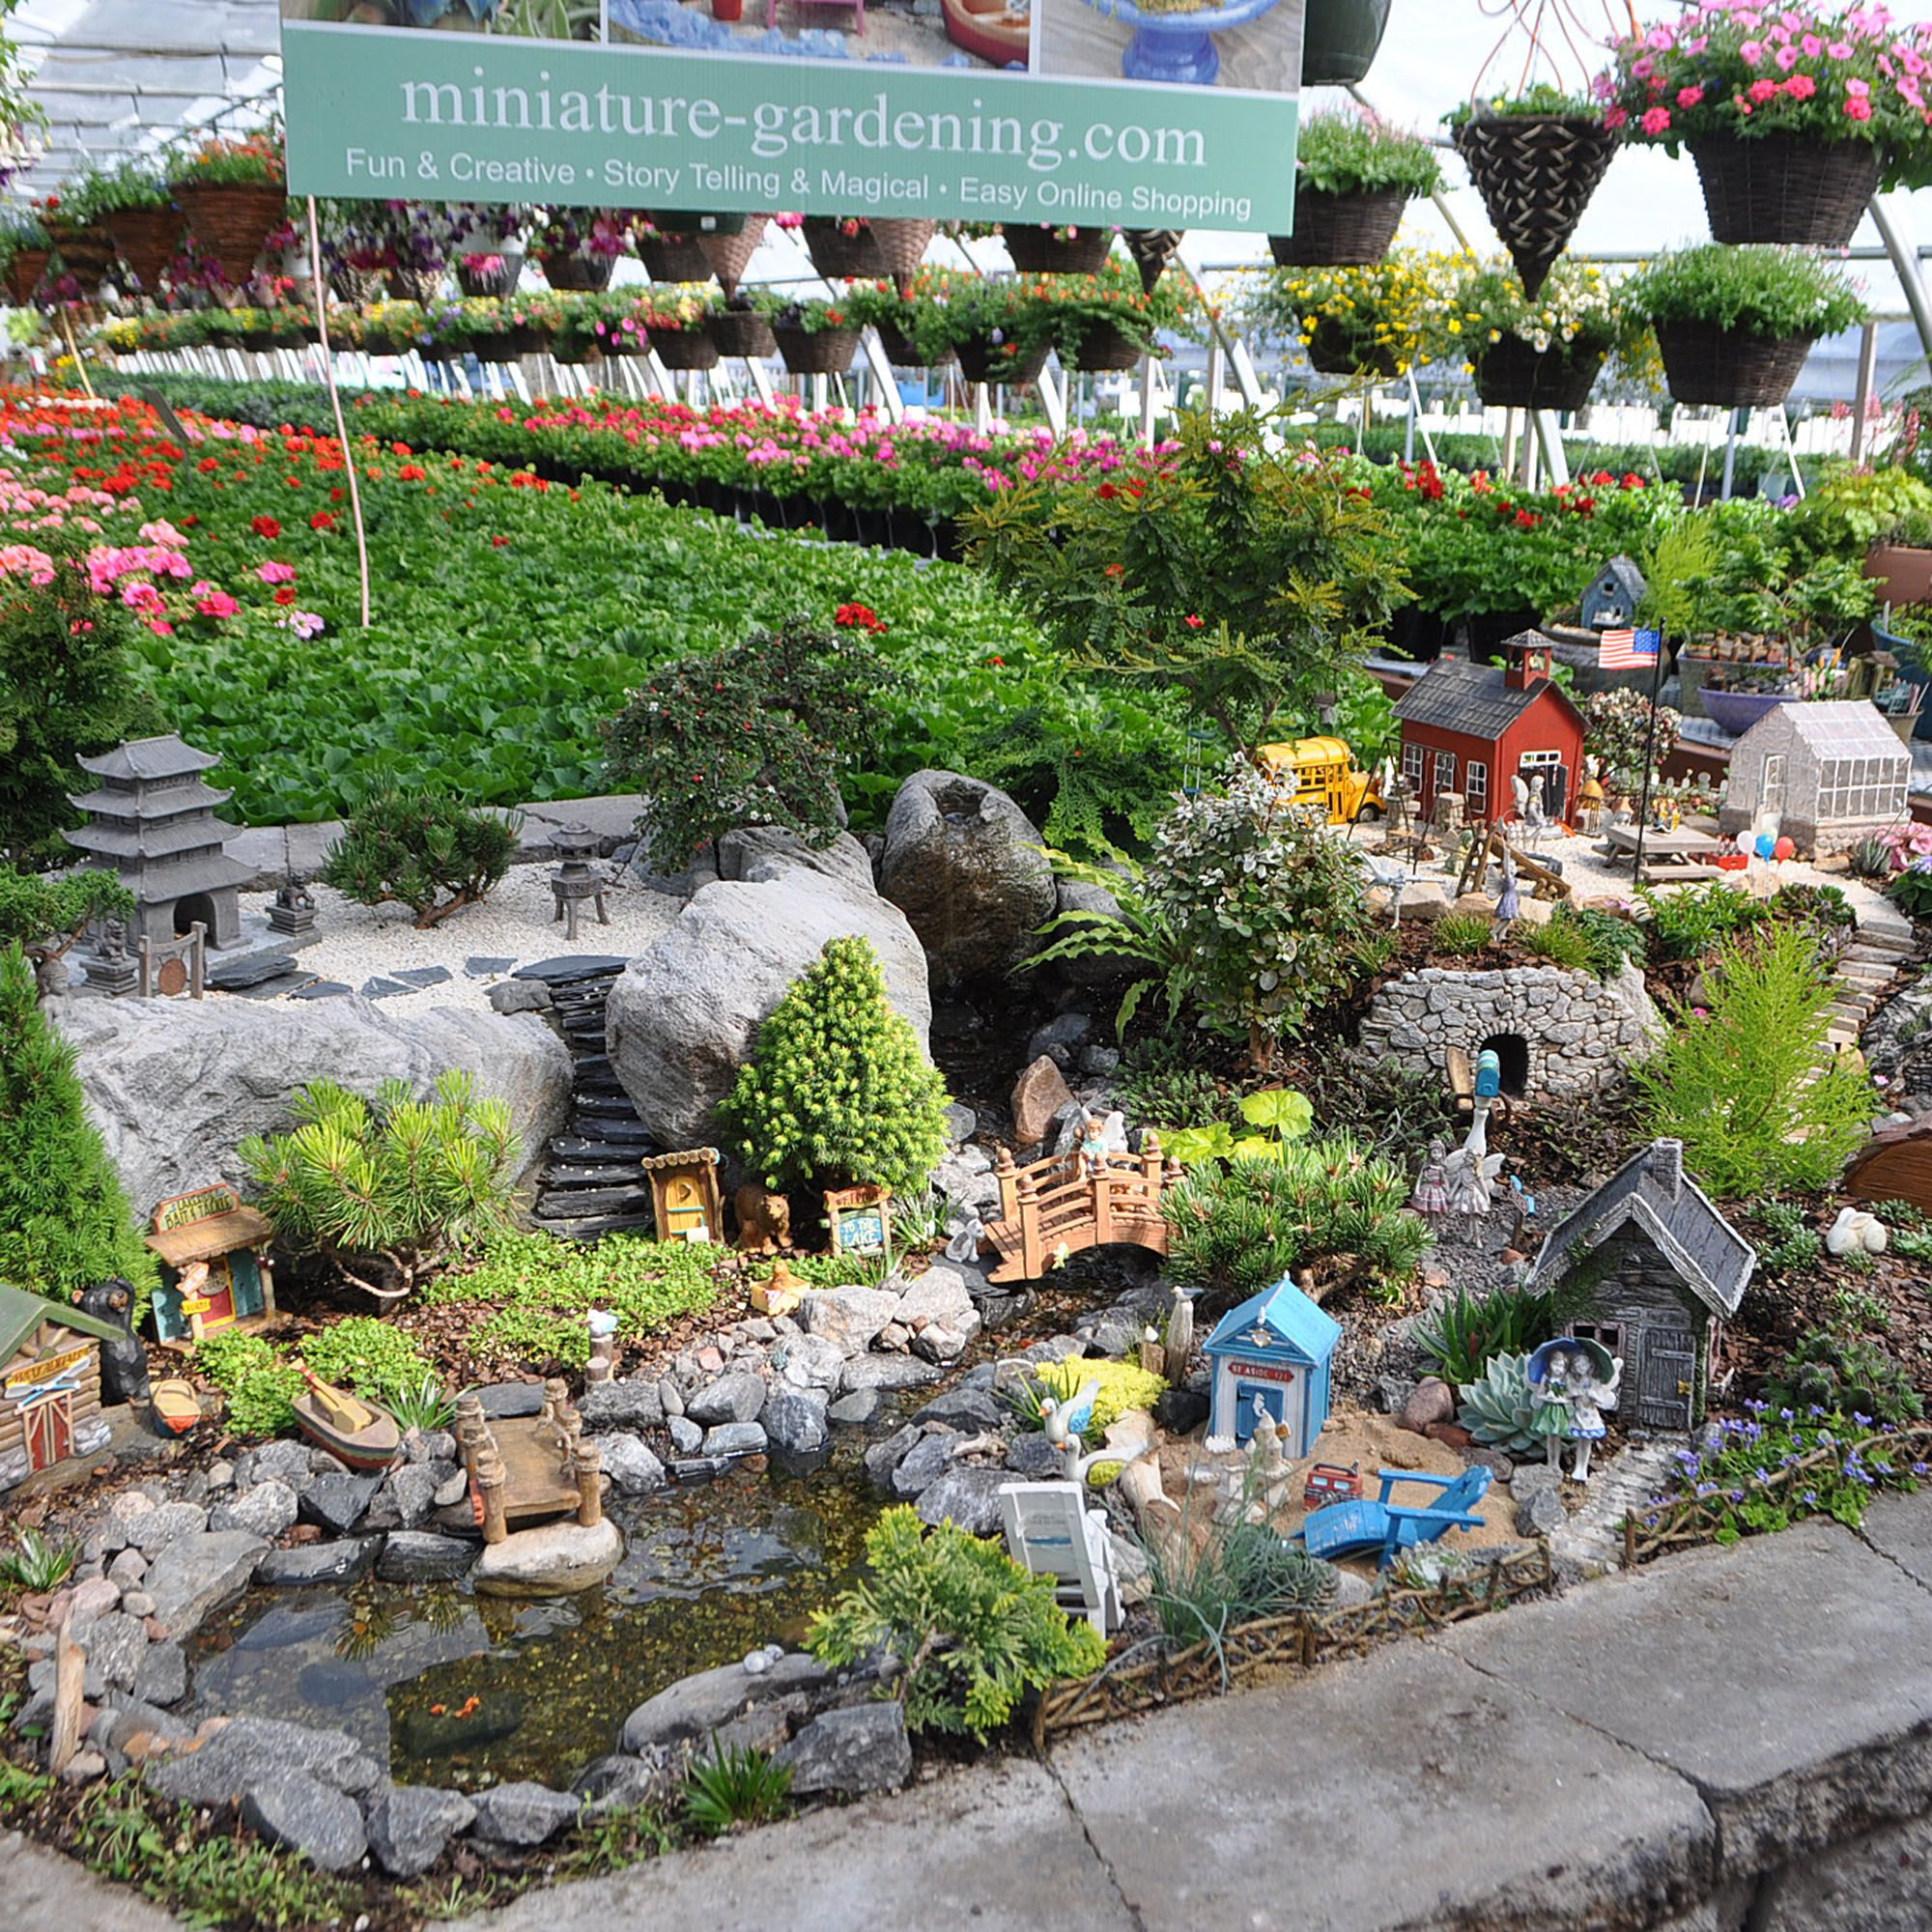 See The Latest Miniature Fairy Garden Accessories That Are On Sale